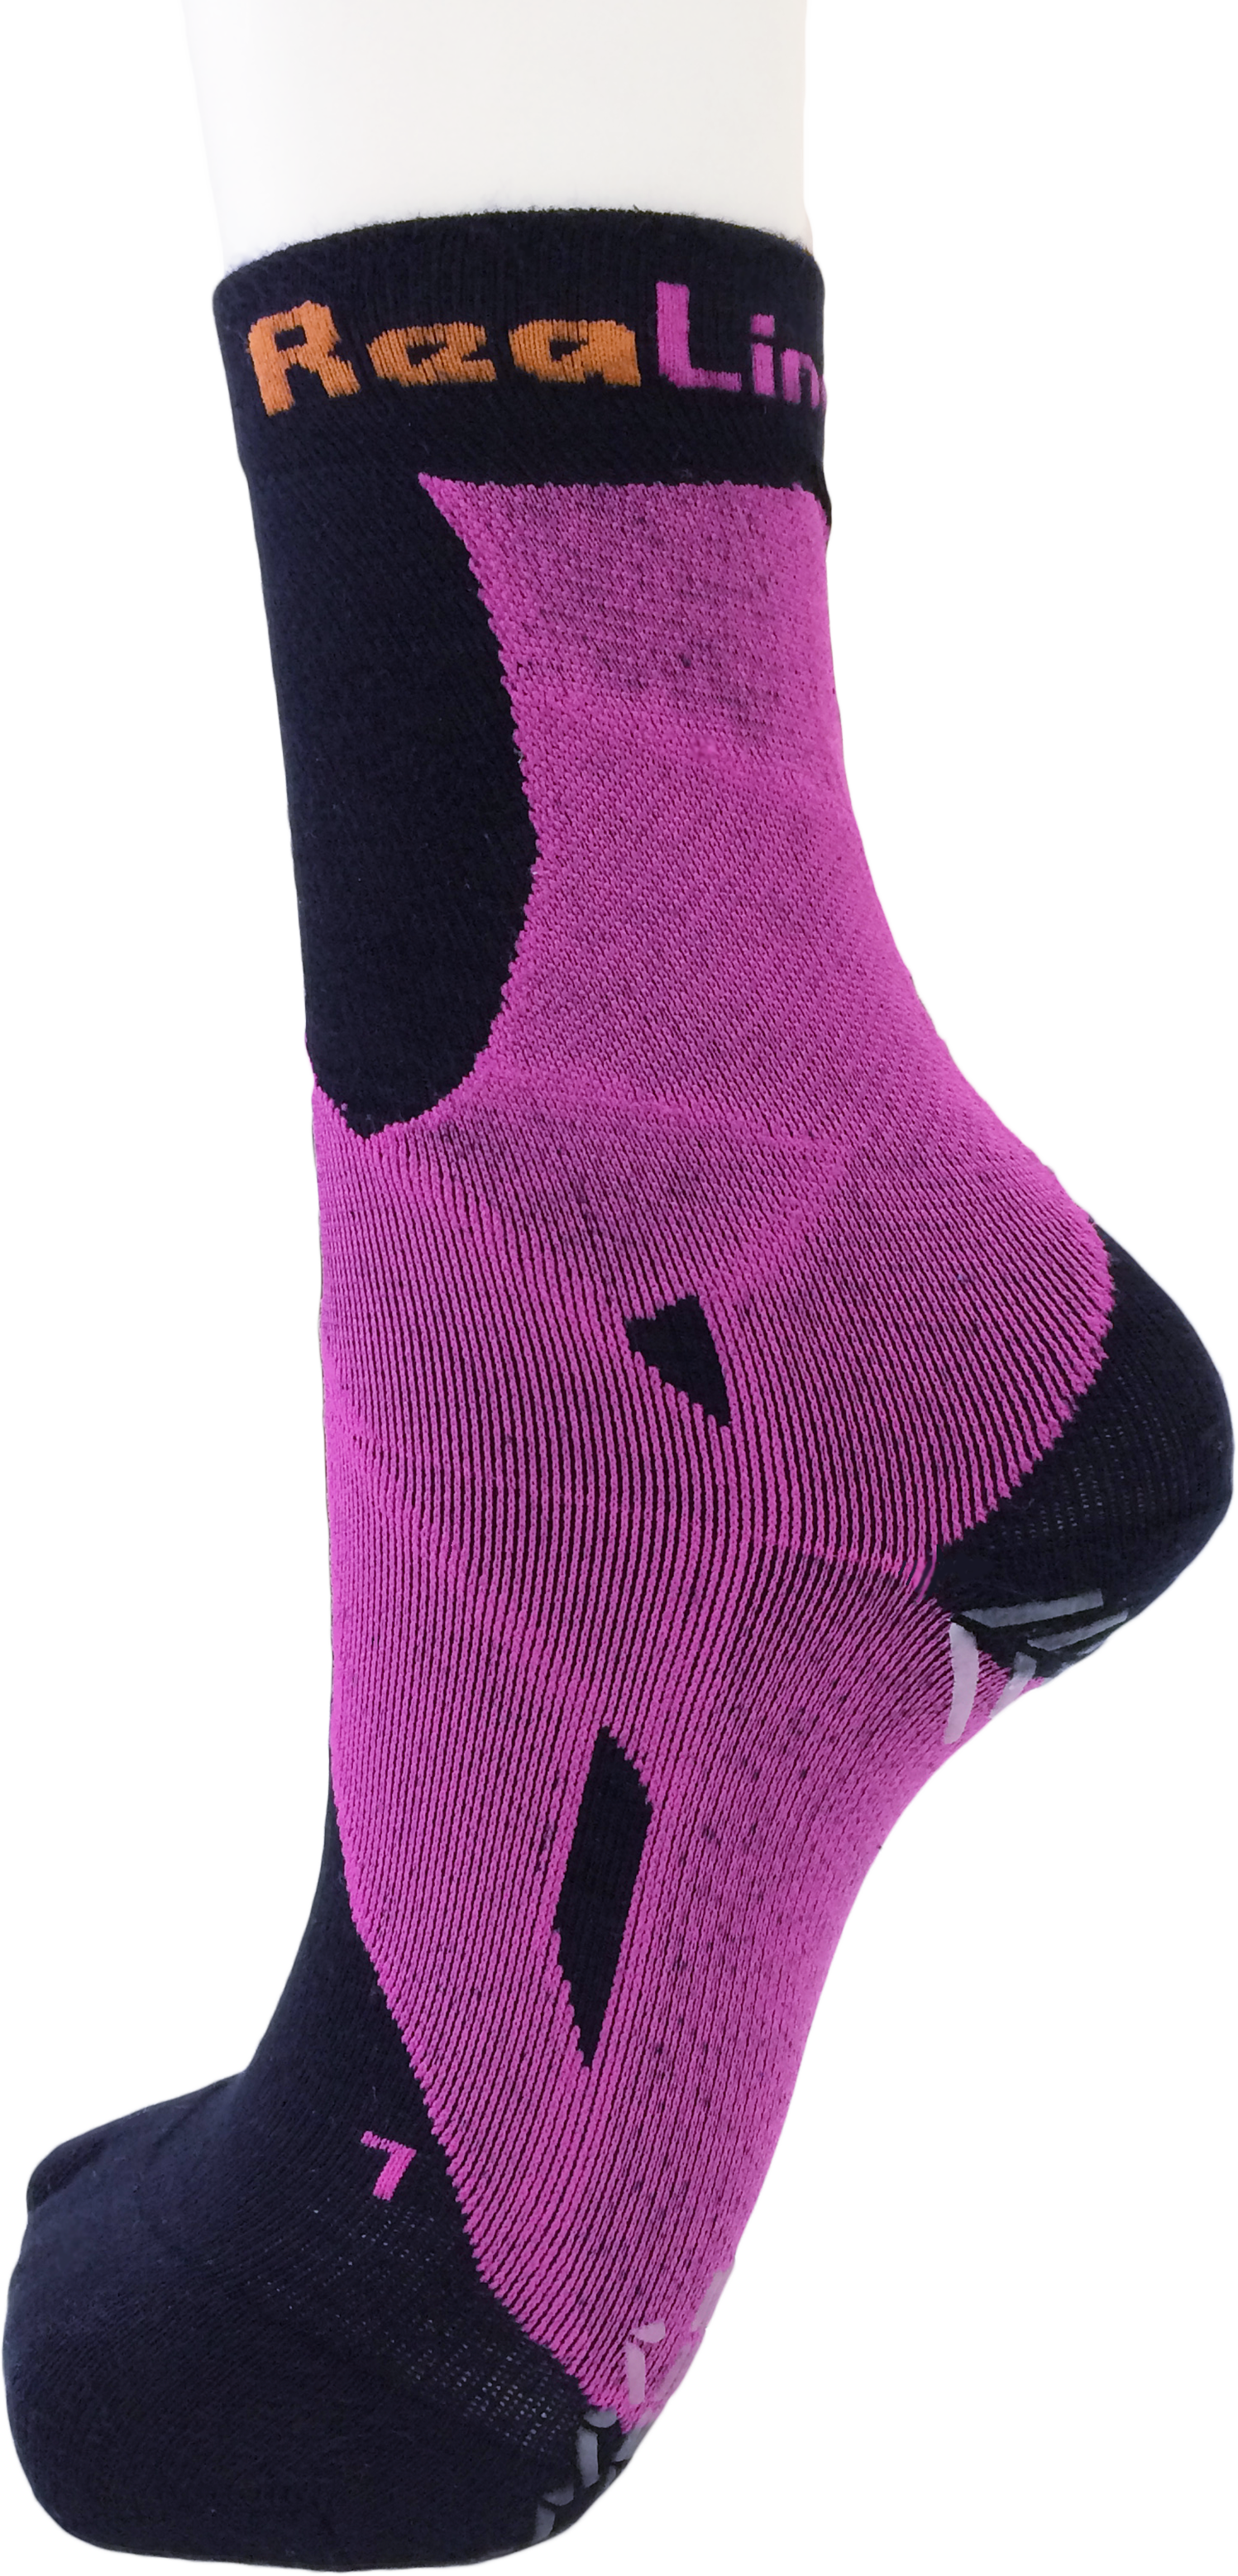 ReaLine® Socks (original)